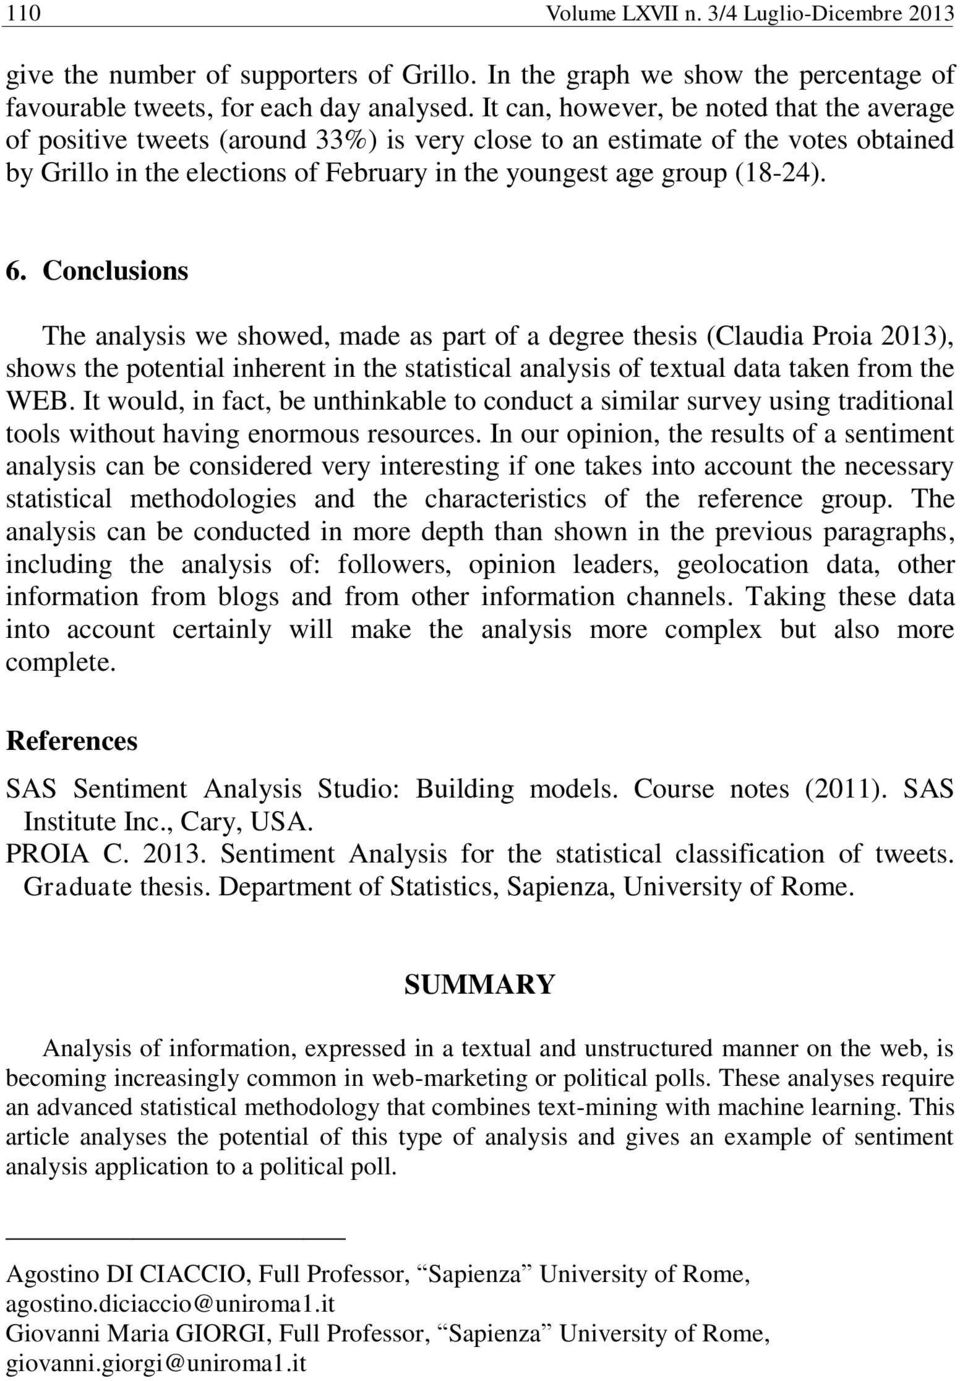 6. Conclusions The analysis we showed, made as part of a degree thesis (Claudia Proia 2013), shows the potential inherent in the statistical analysis of textual data taken from the WEB.